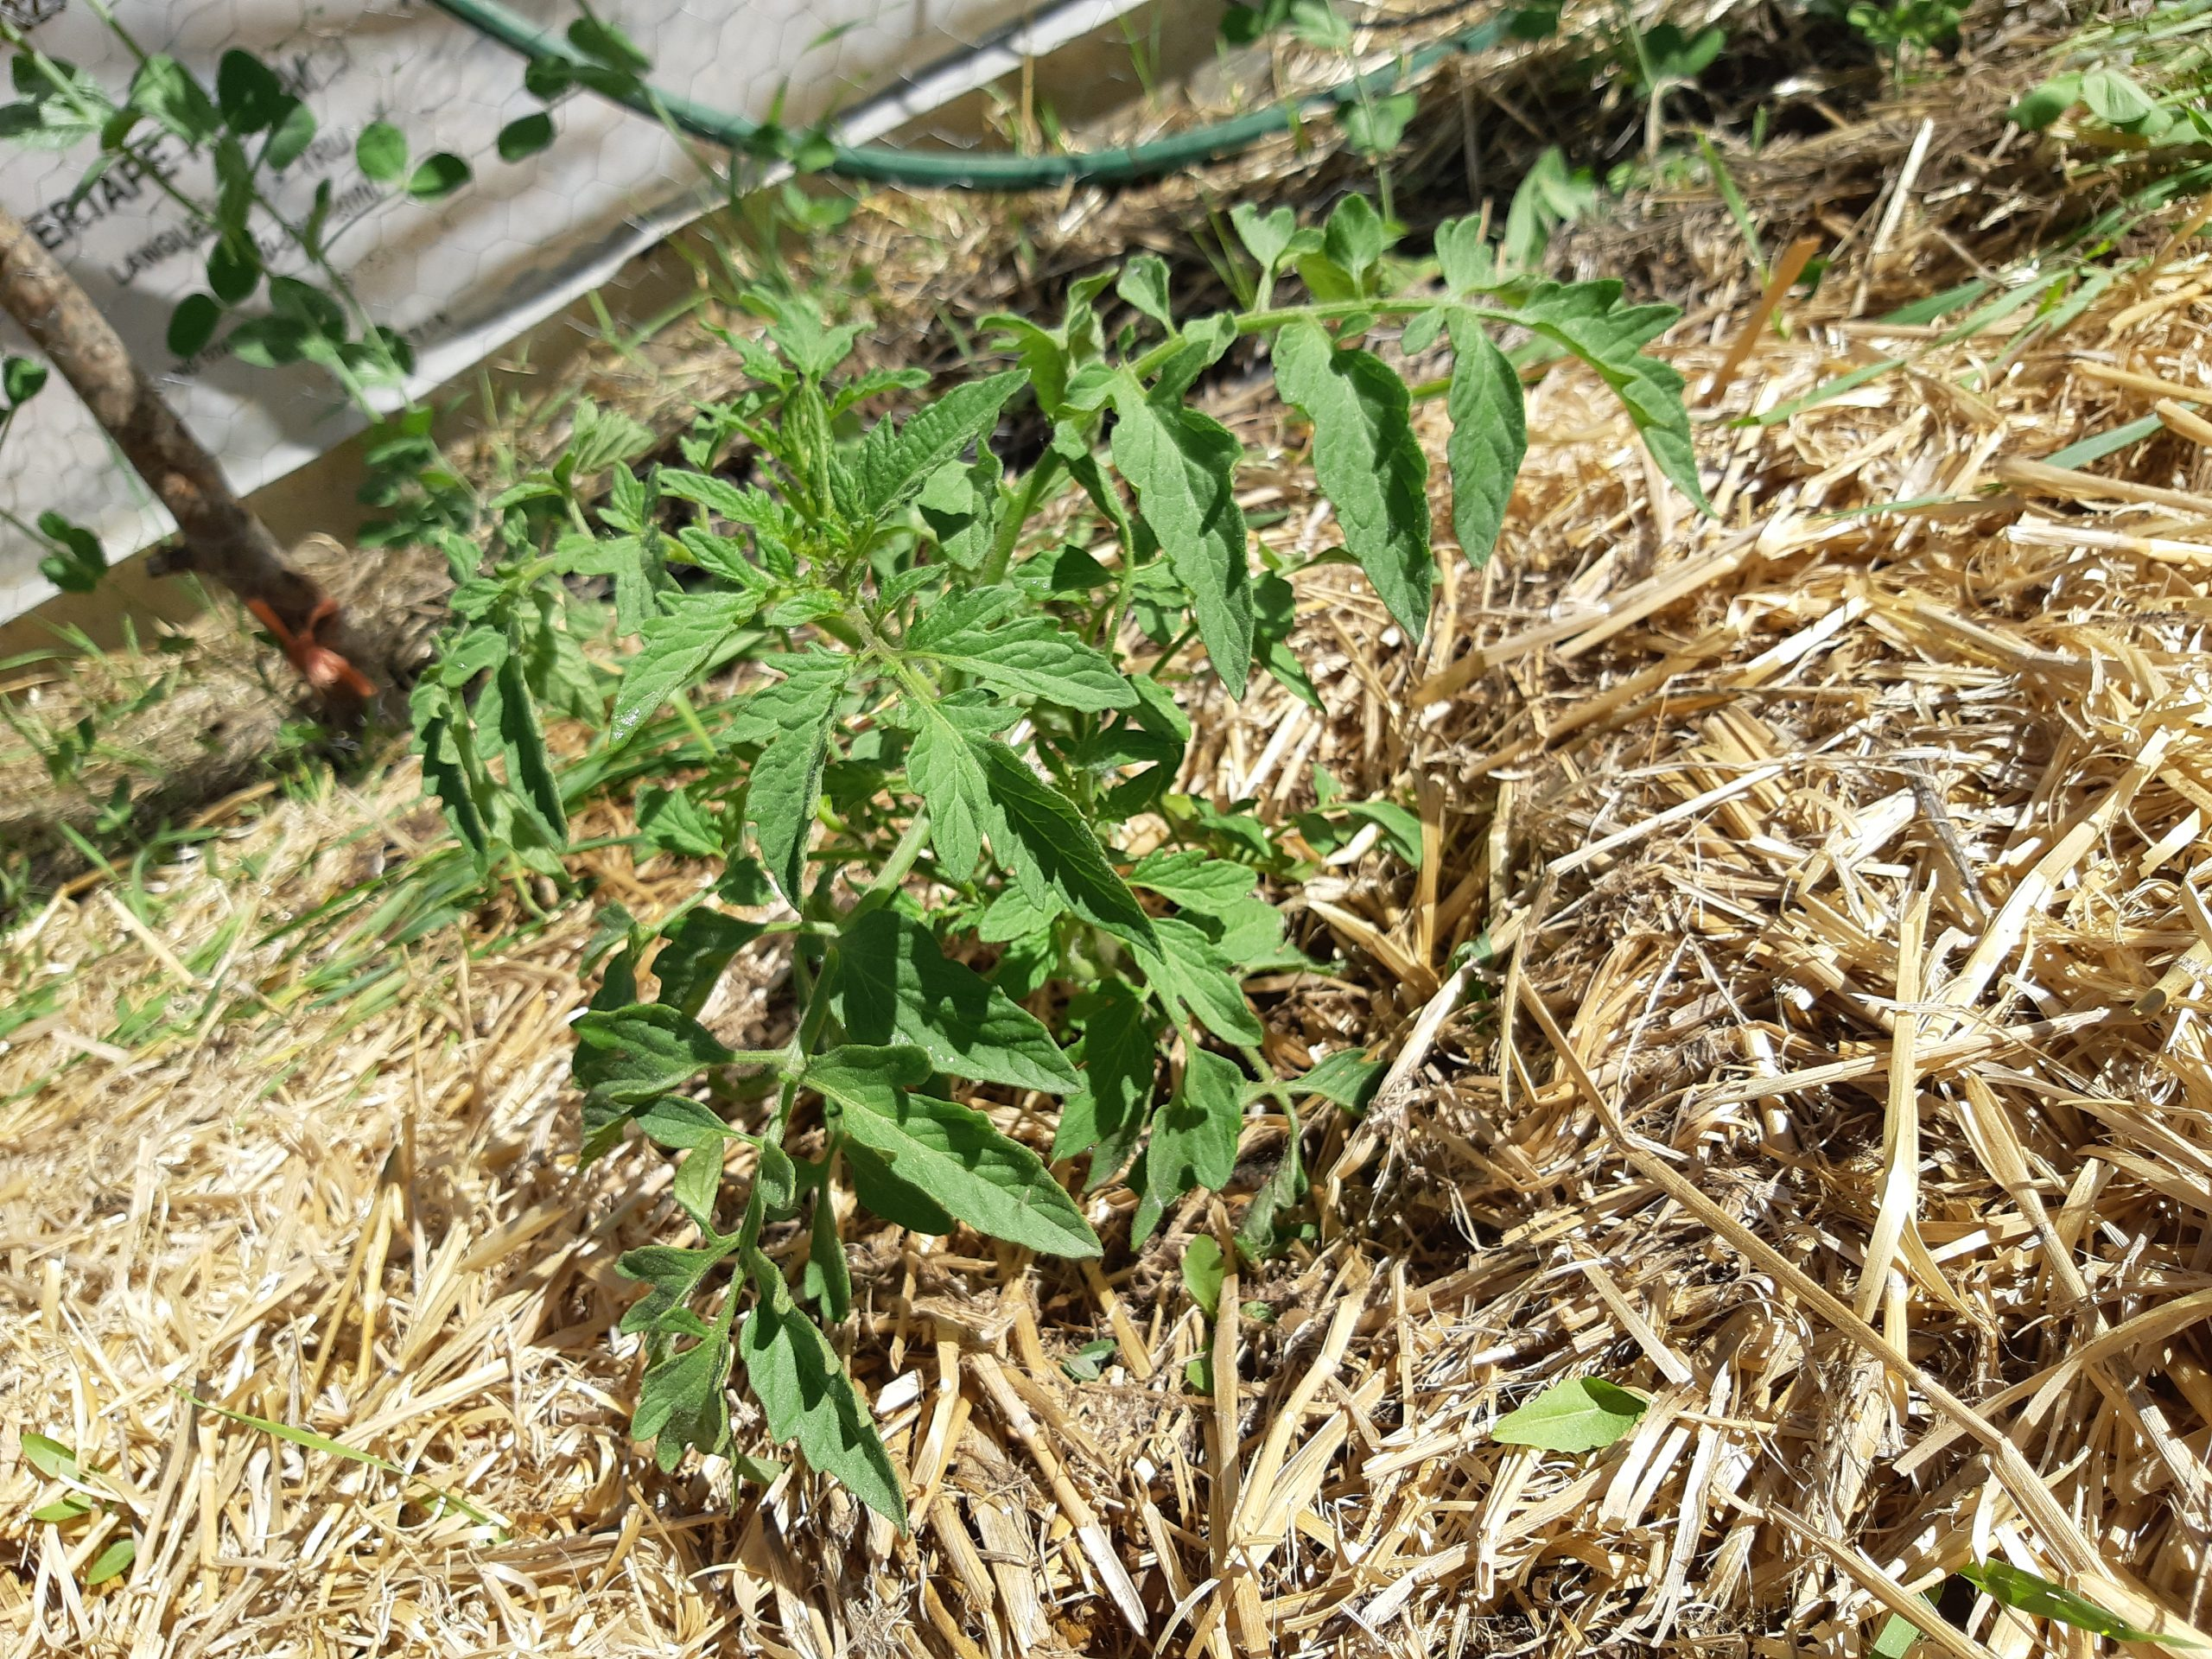 Homemade Liquid Fertilizer: A Tale from the Tomato Patch